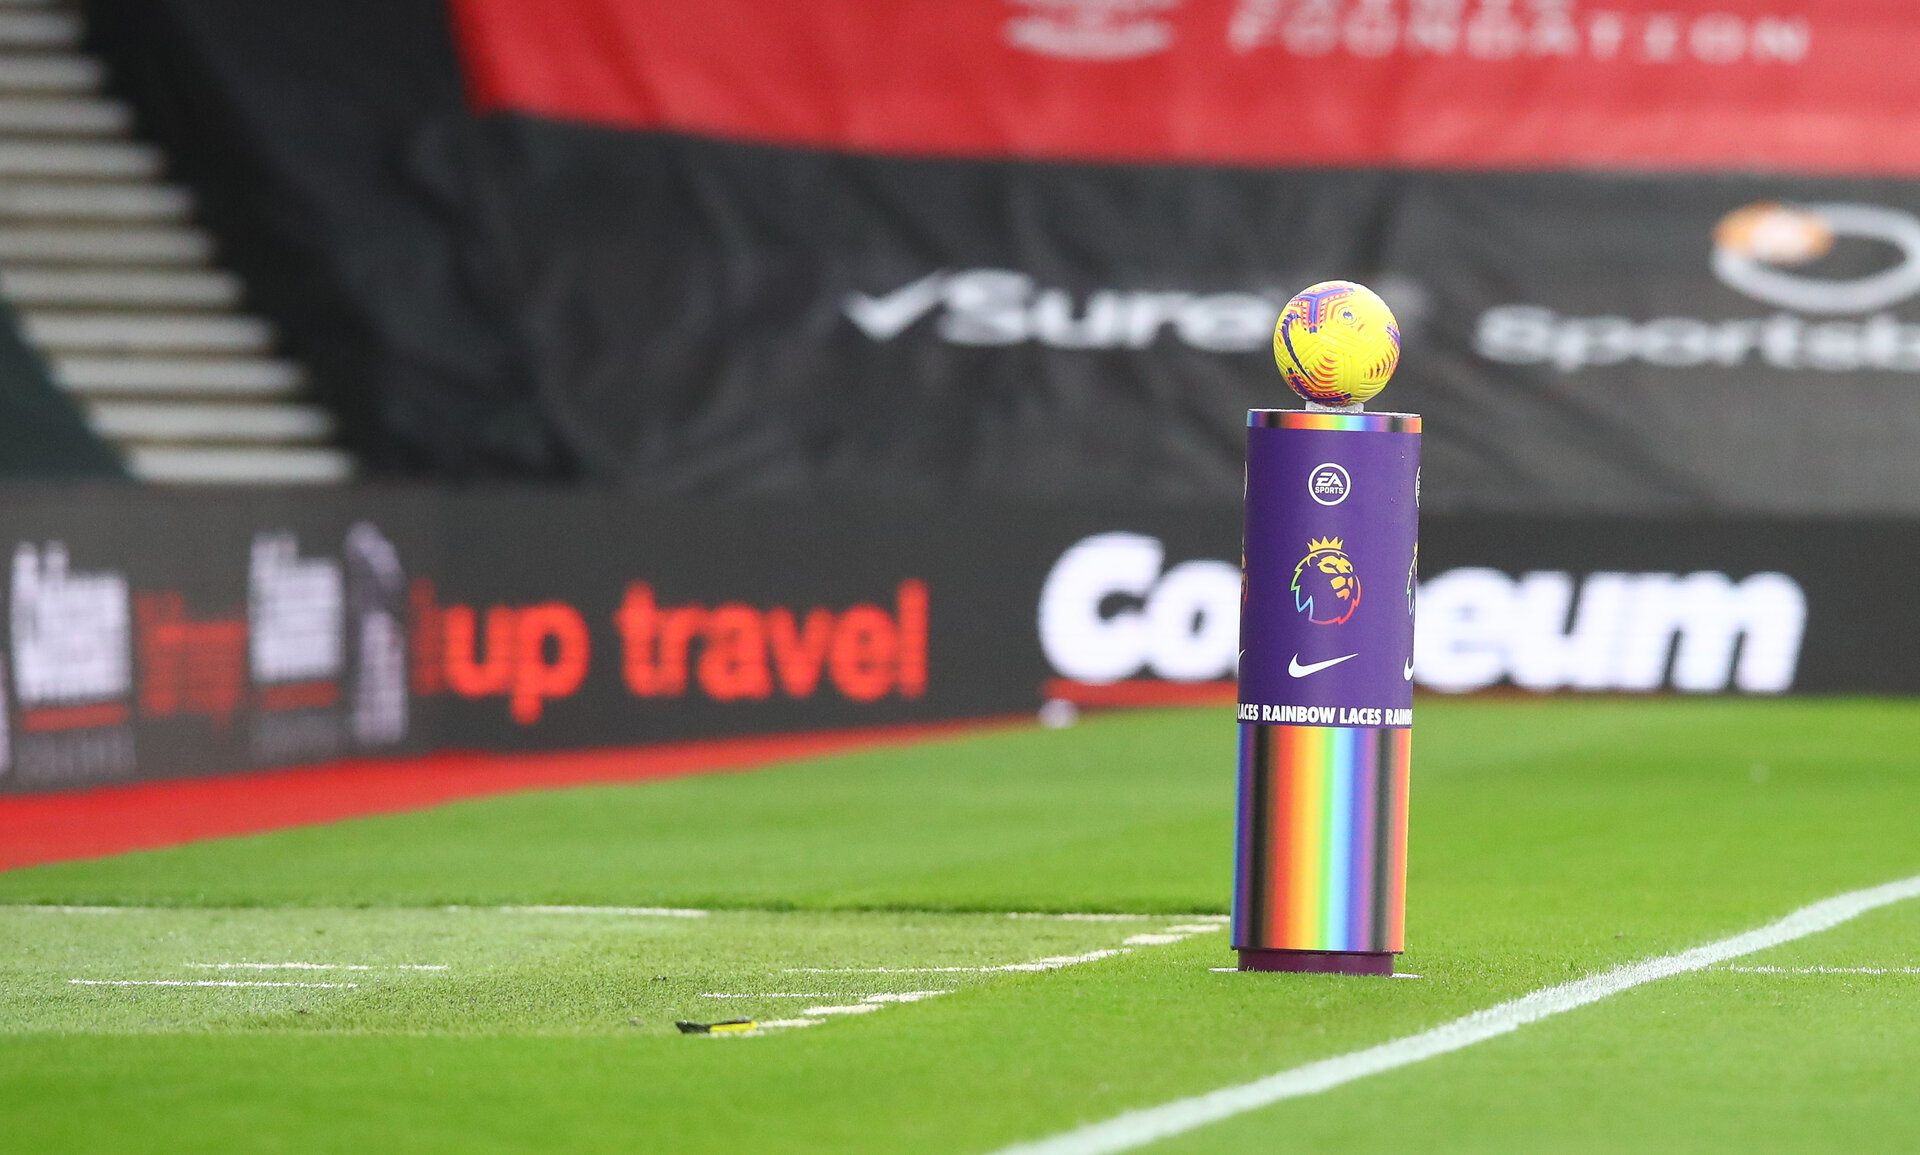 SOUTHAMPTON, ENGLAND - DECEMBER 13: A rainbow laces plynth during the Premier League match between Southampton and Sheffield United at St Mary's Stadium on December 13, 2020 in Southampton, England. A limited number of spectators (2000) are welcomed back to stadiums to watch elite football across England. This was following easing of restrictions on spectators in tiers one and two areas only. (Photo by Matt Watson/Southampton FC via Getty Images)